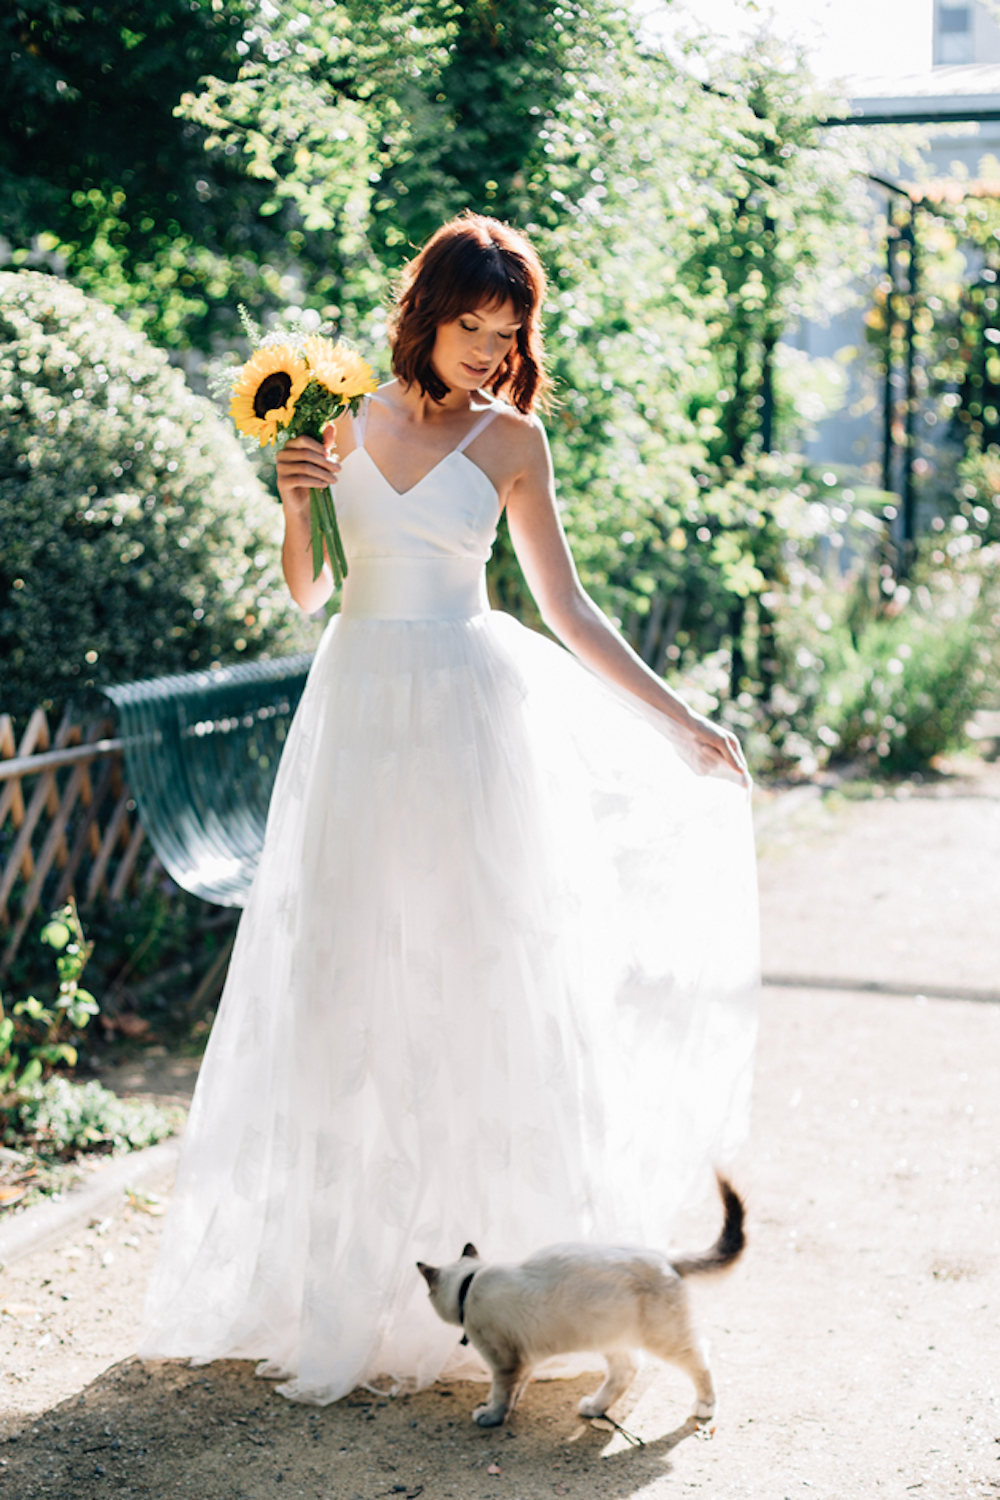 parisian-inspired-blog-mariagepierreatelier-photographe-mariage-paris-023.jpg